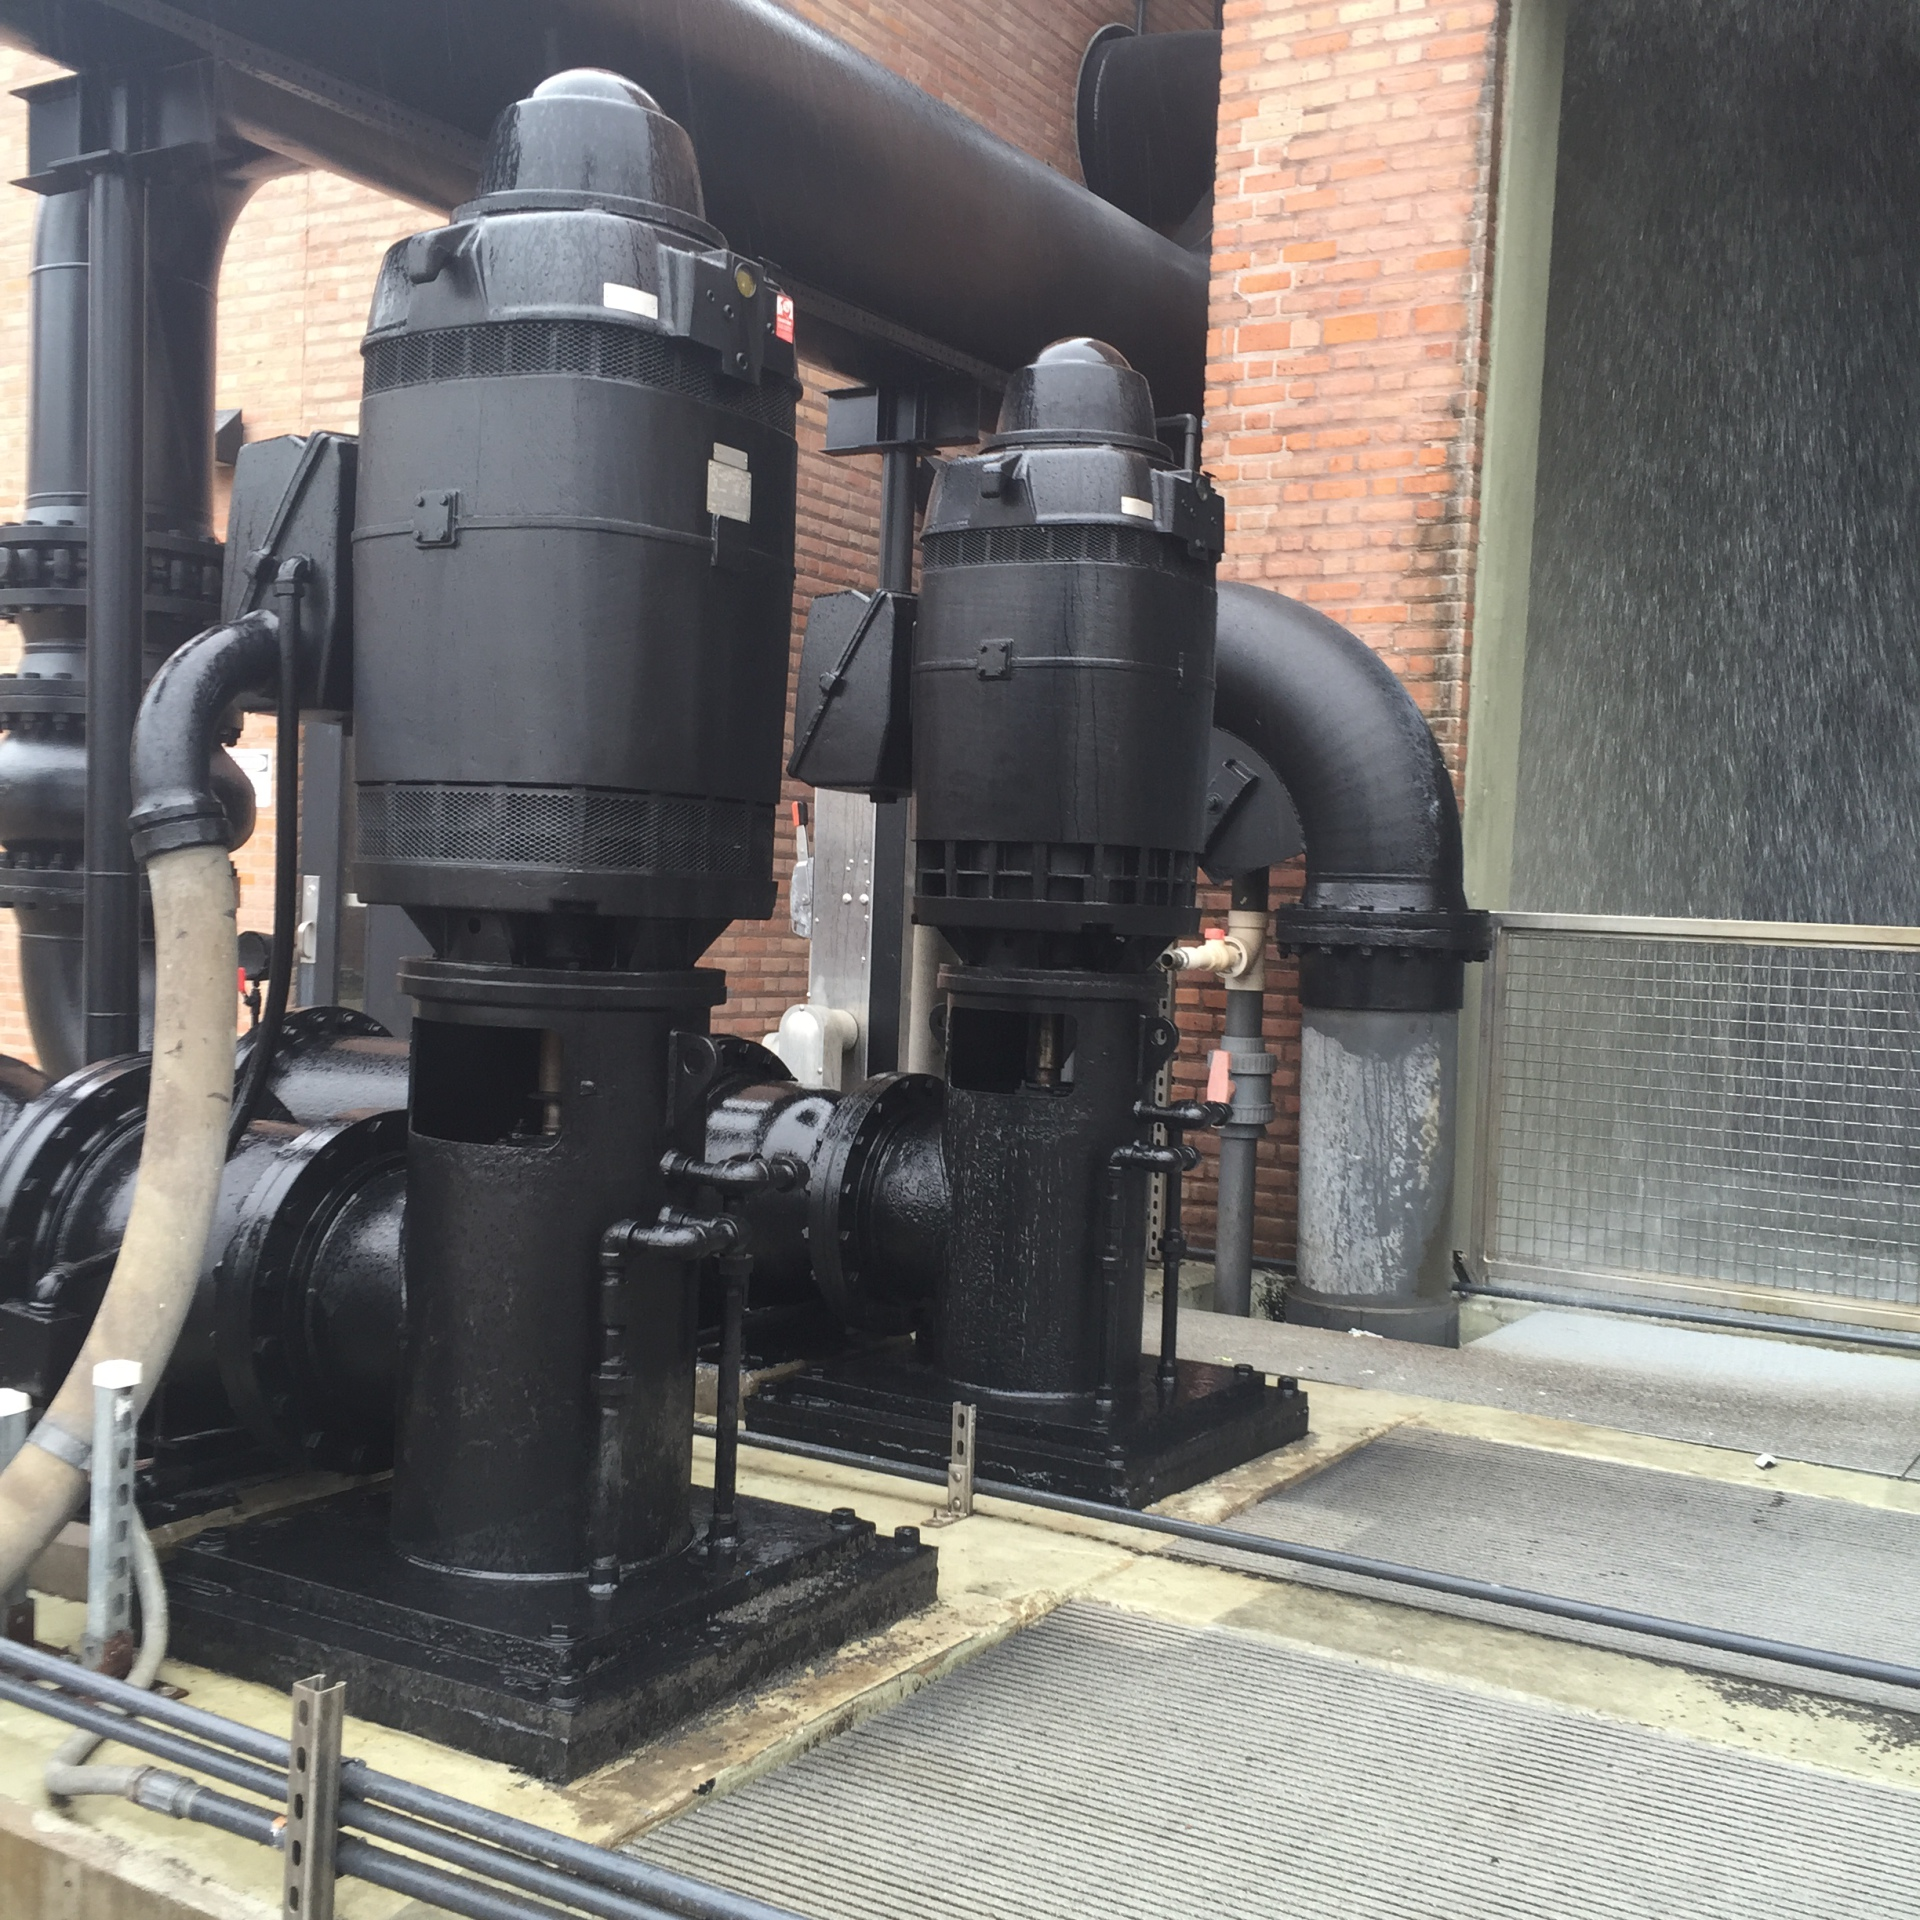 Cooling tower pumps after being regrouted taking care of resonance vibration